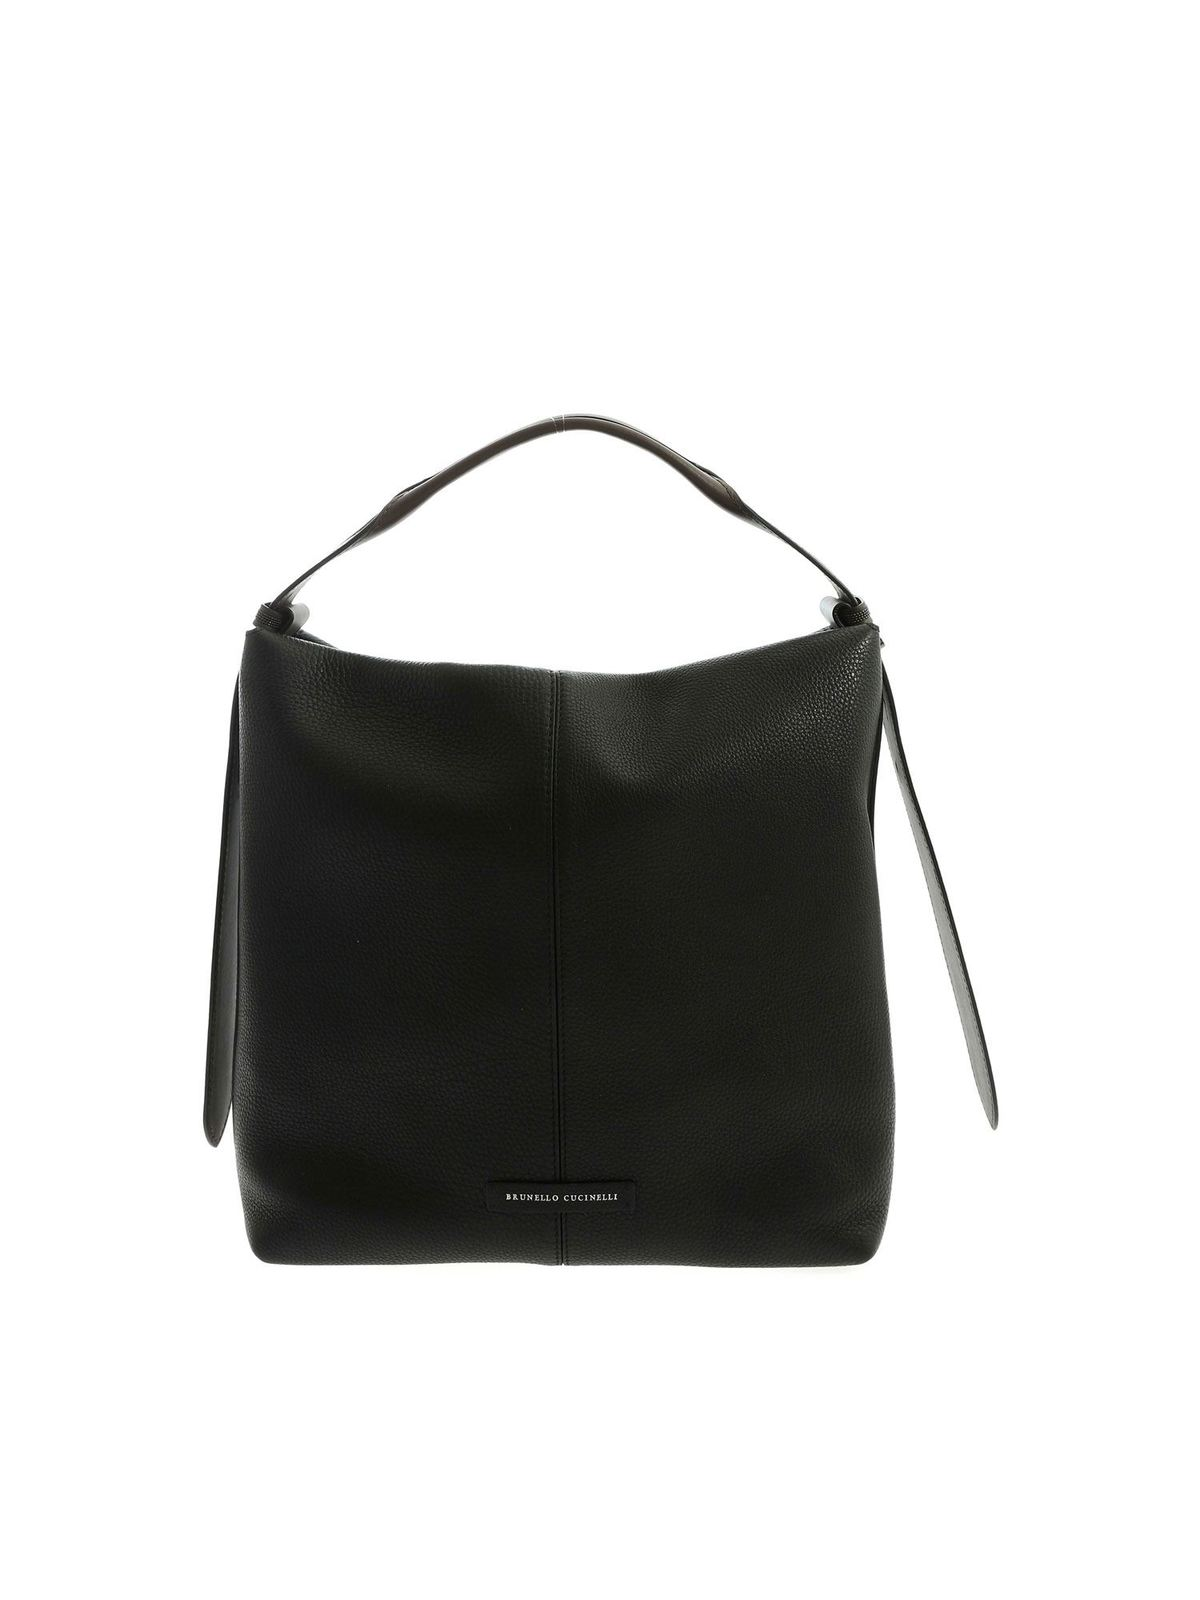 BRUNELLO CUCINELLI LOGO LEATHER SHOULDER BAG IN BLACK